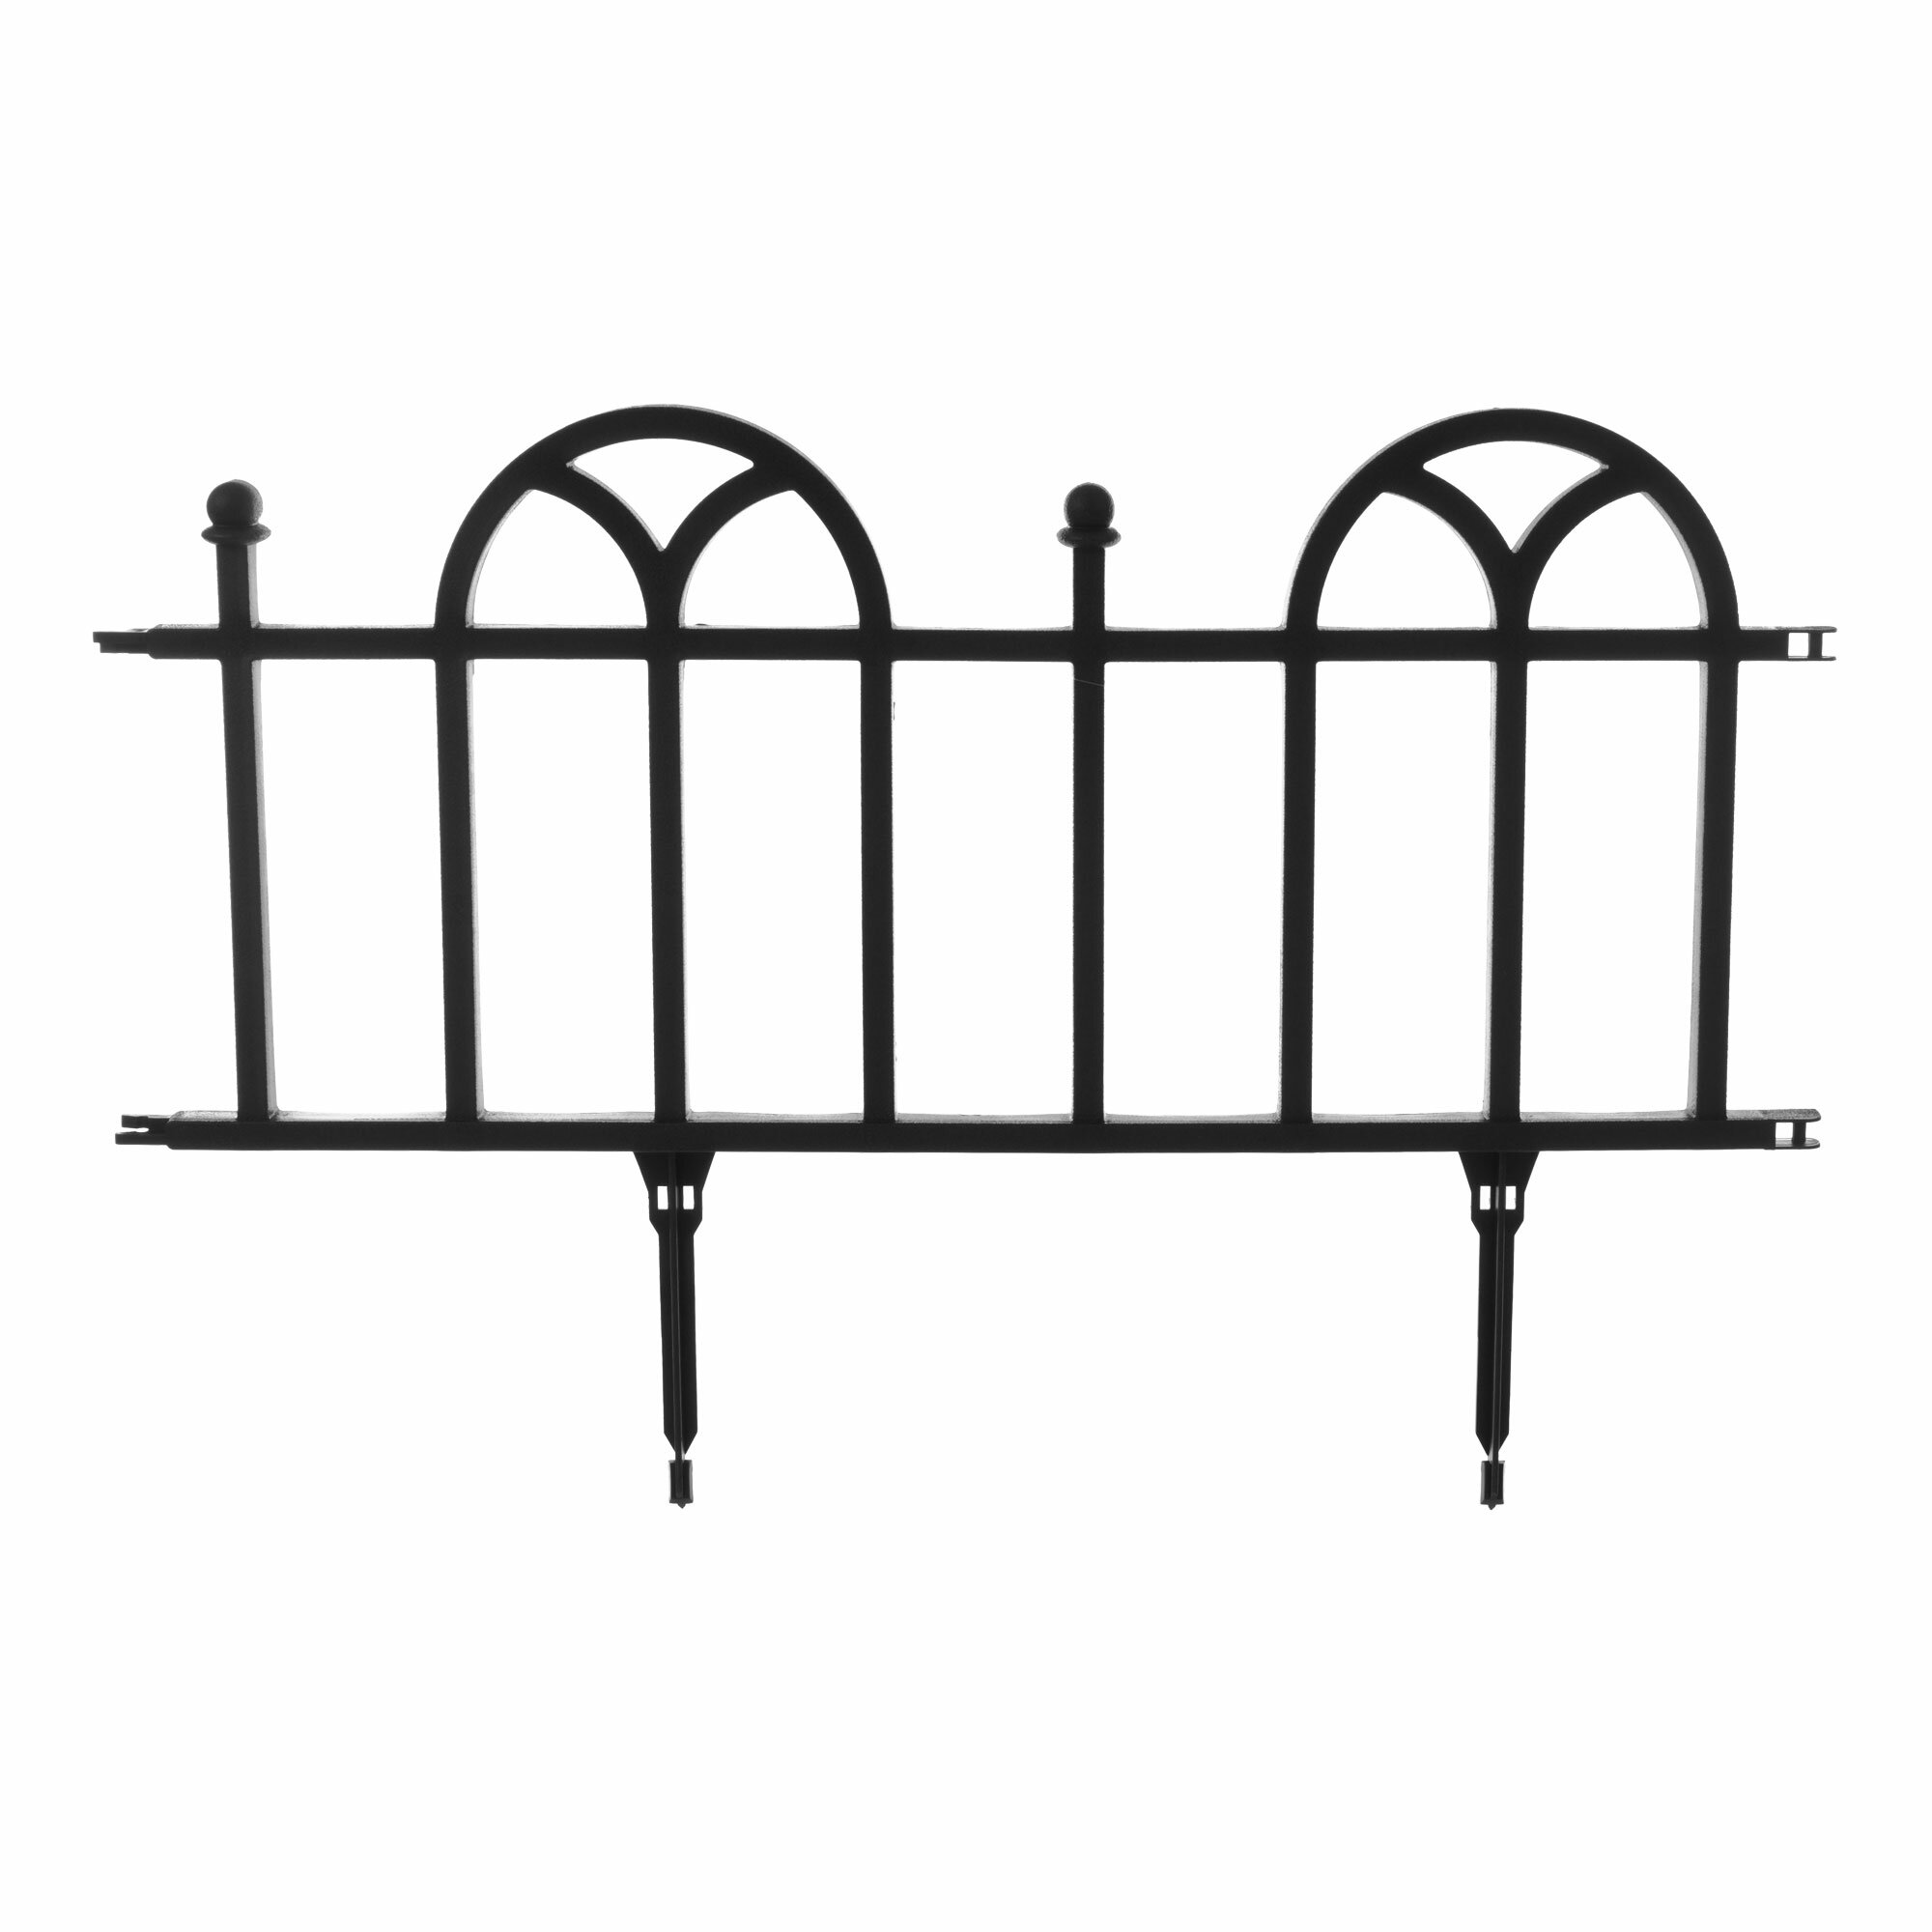 Pure Garden Victorian Garden Border Fencing Reviews Wayfair